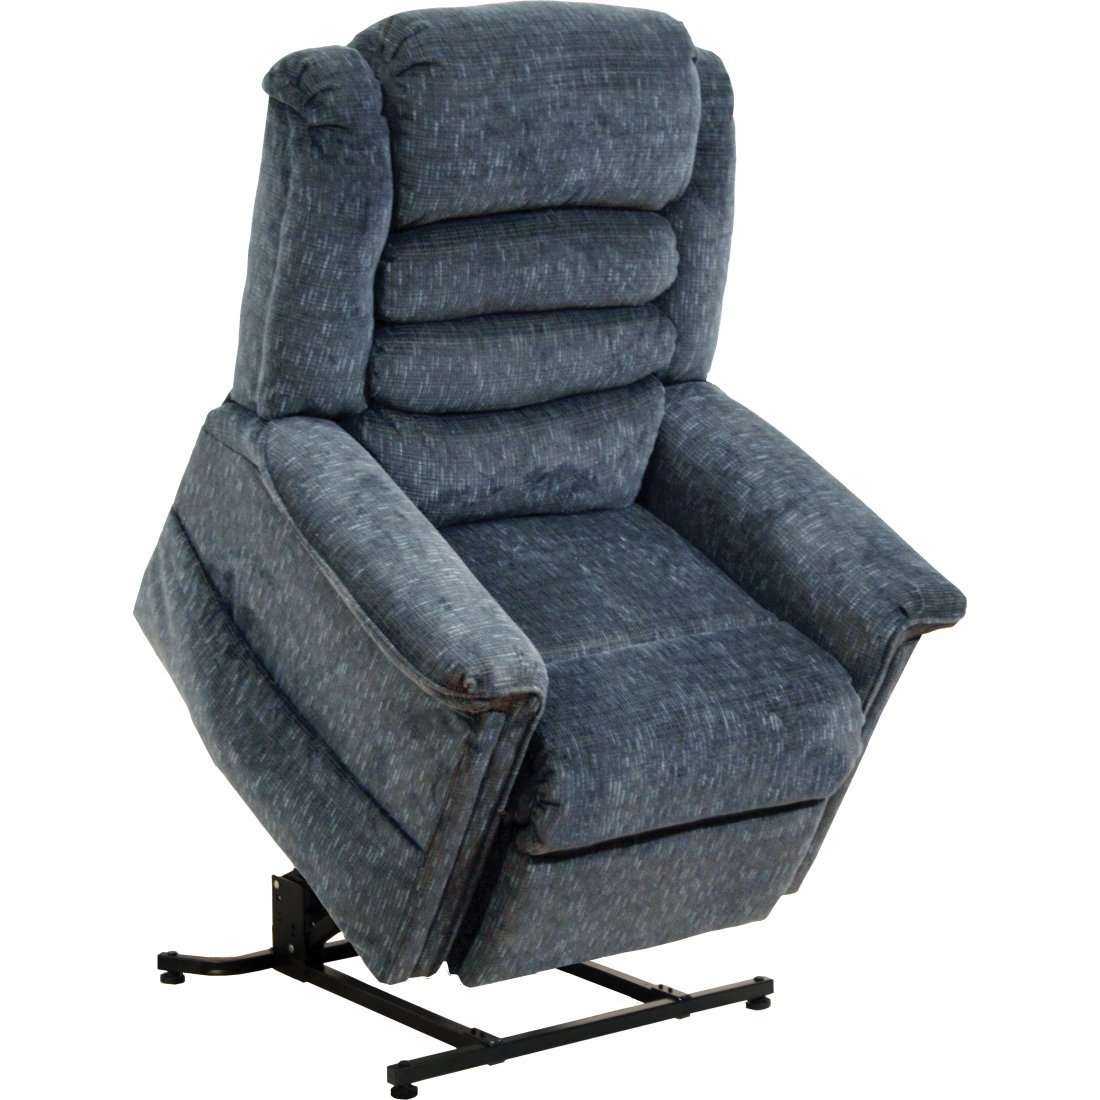 Catnapper soother 4825 power lift chair recliner with heat for Recliner lift chair